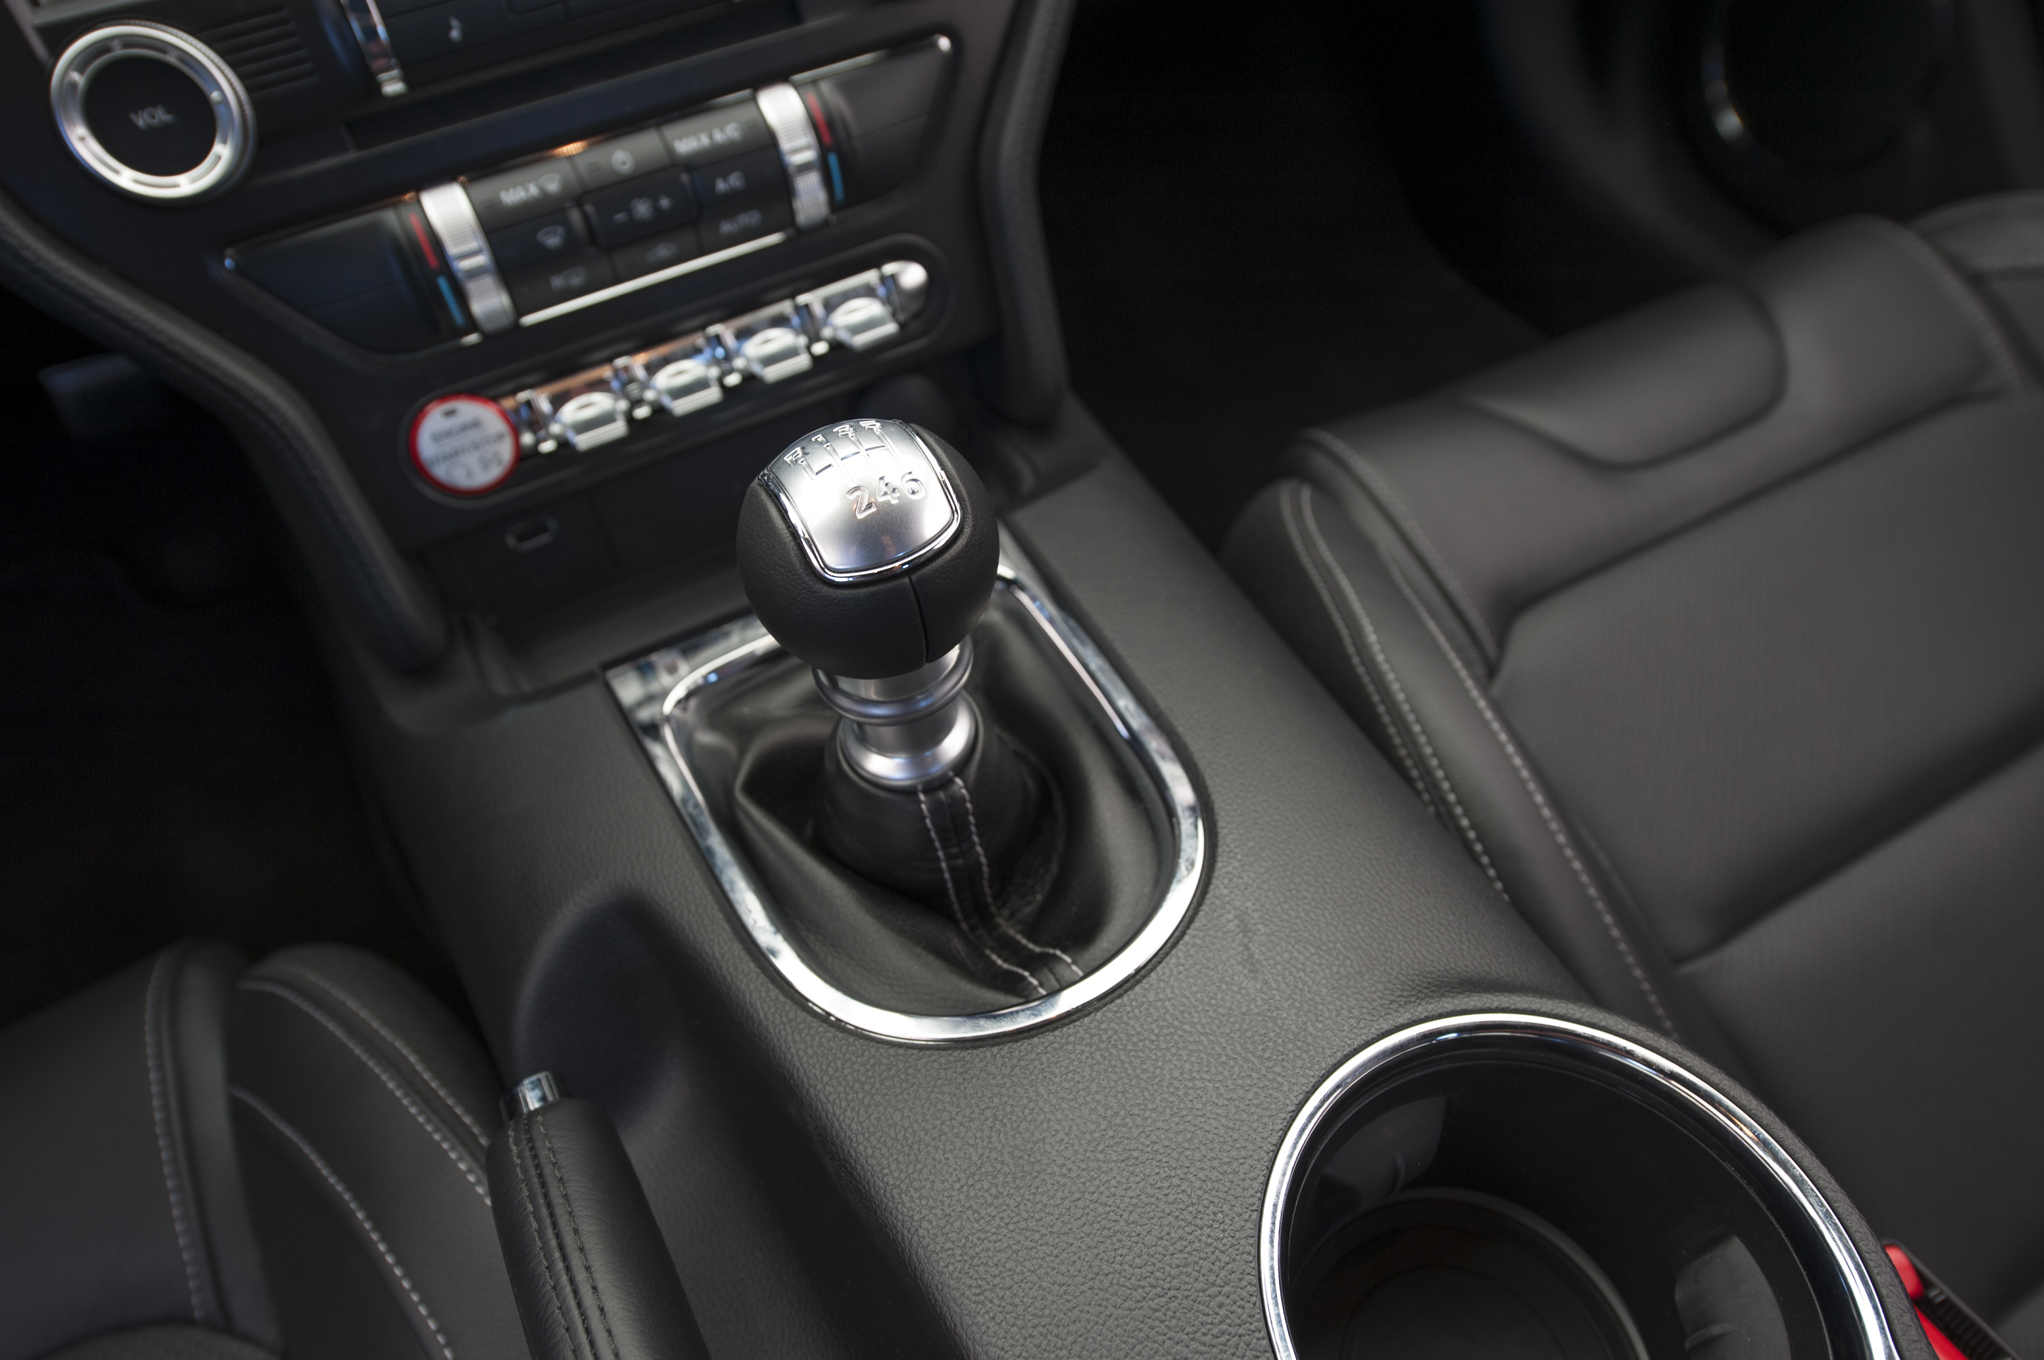 2015 Ford Mustang Gt Gear Shift Knob (Photo 14 of 30)